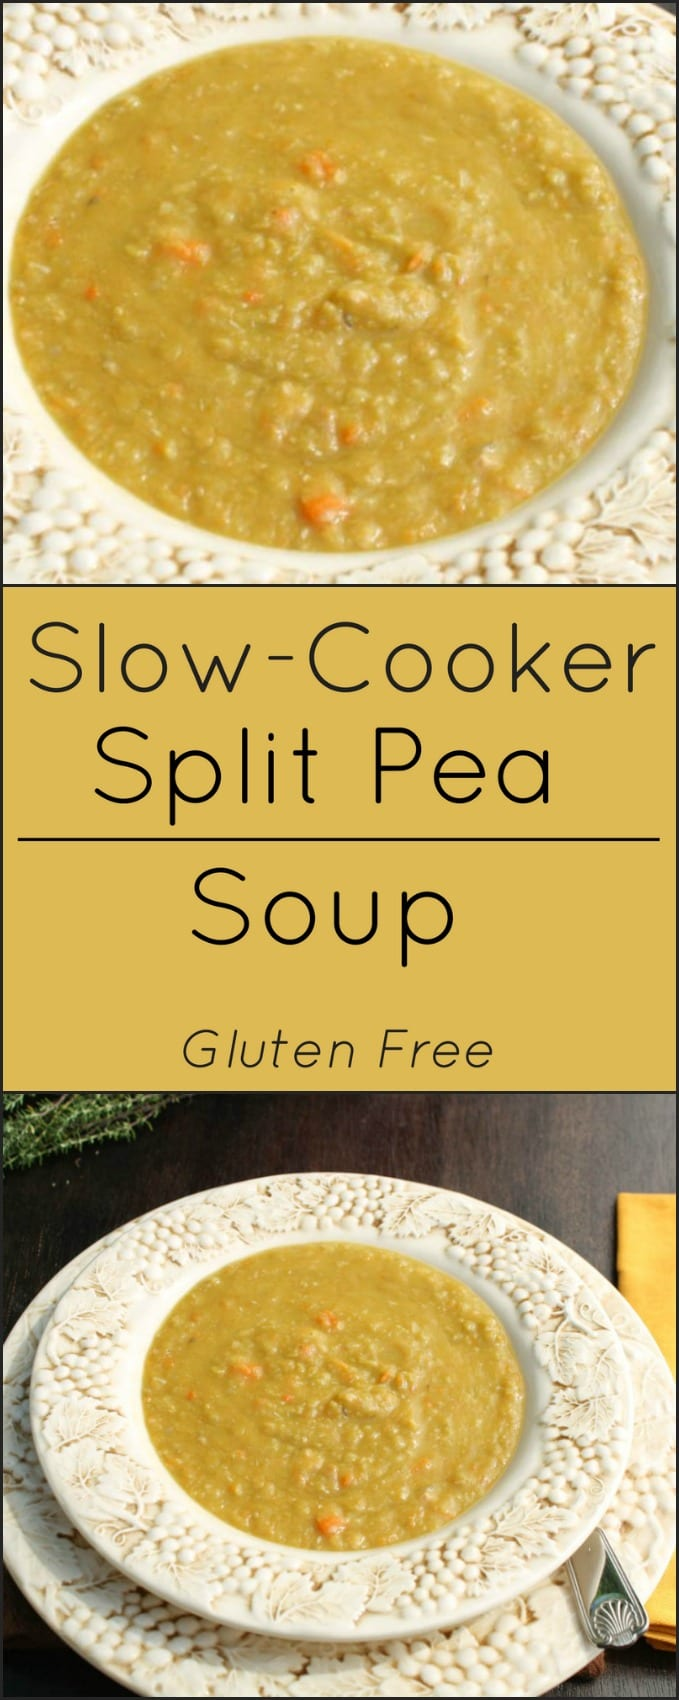 Easy Split Pea Soup makes good use of leftover ham. It's also gluten free!